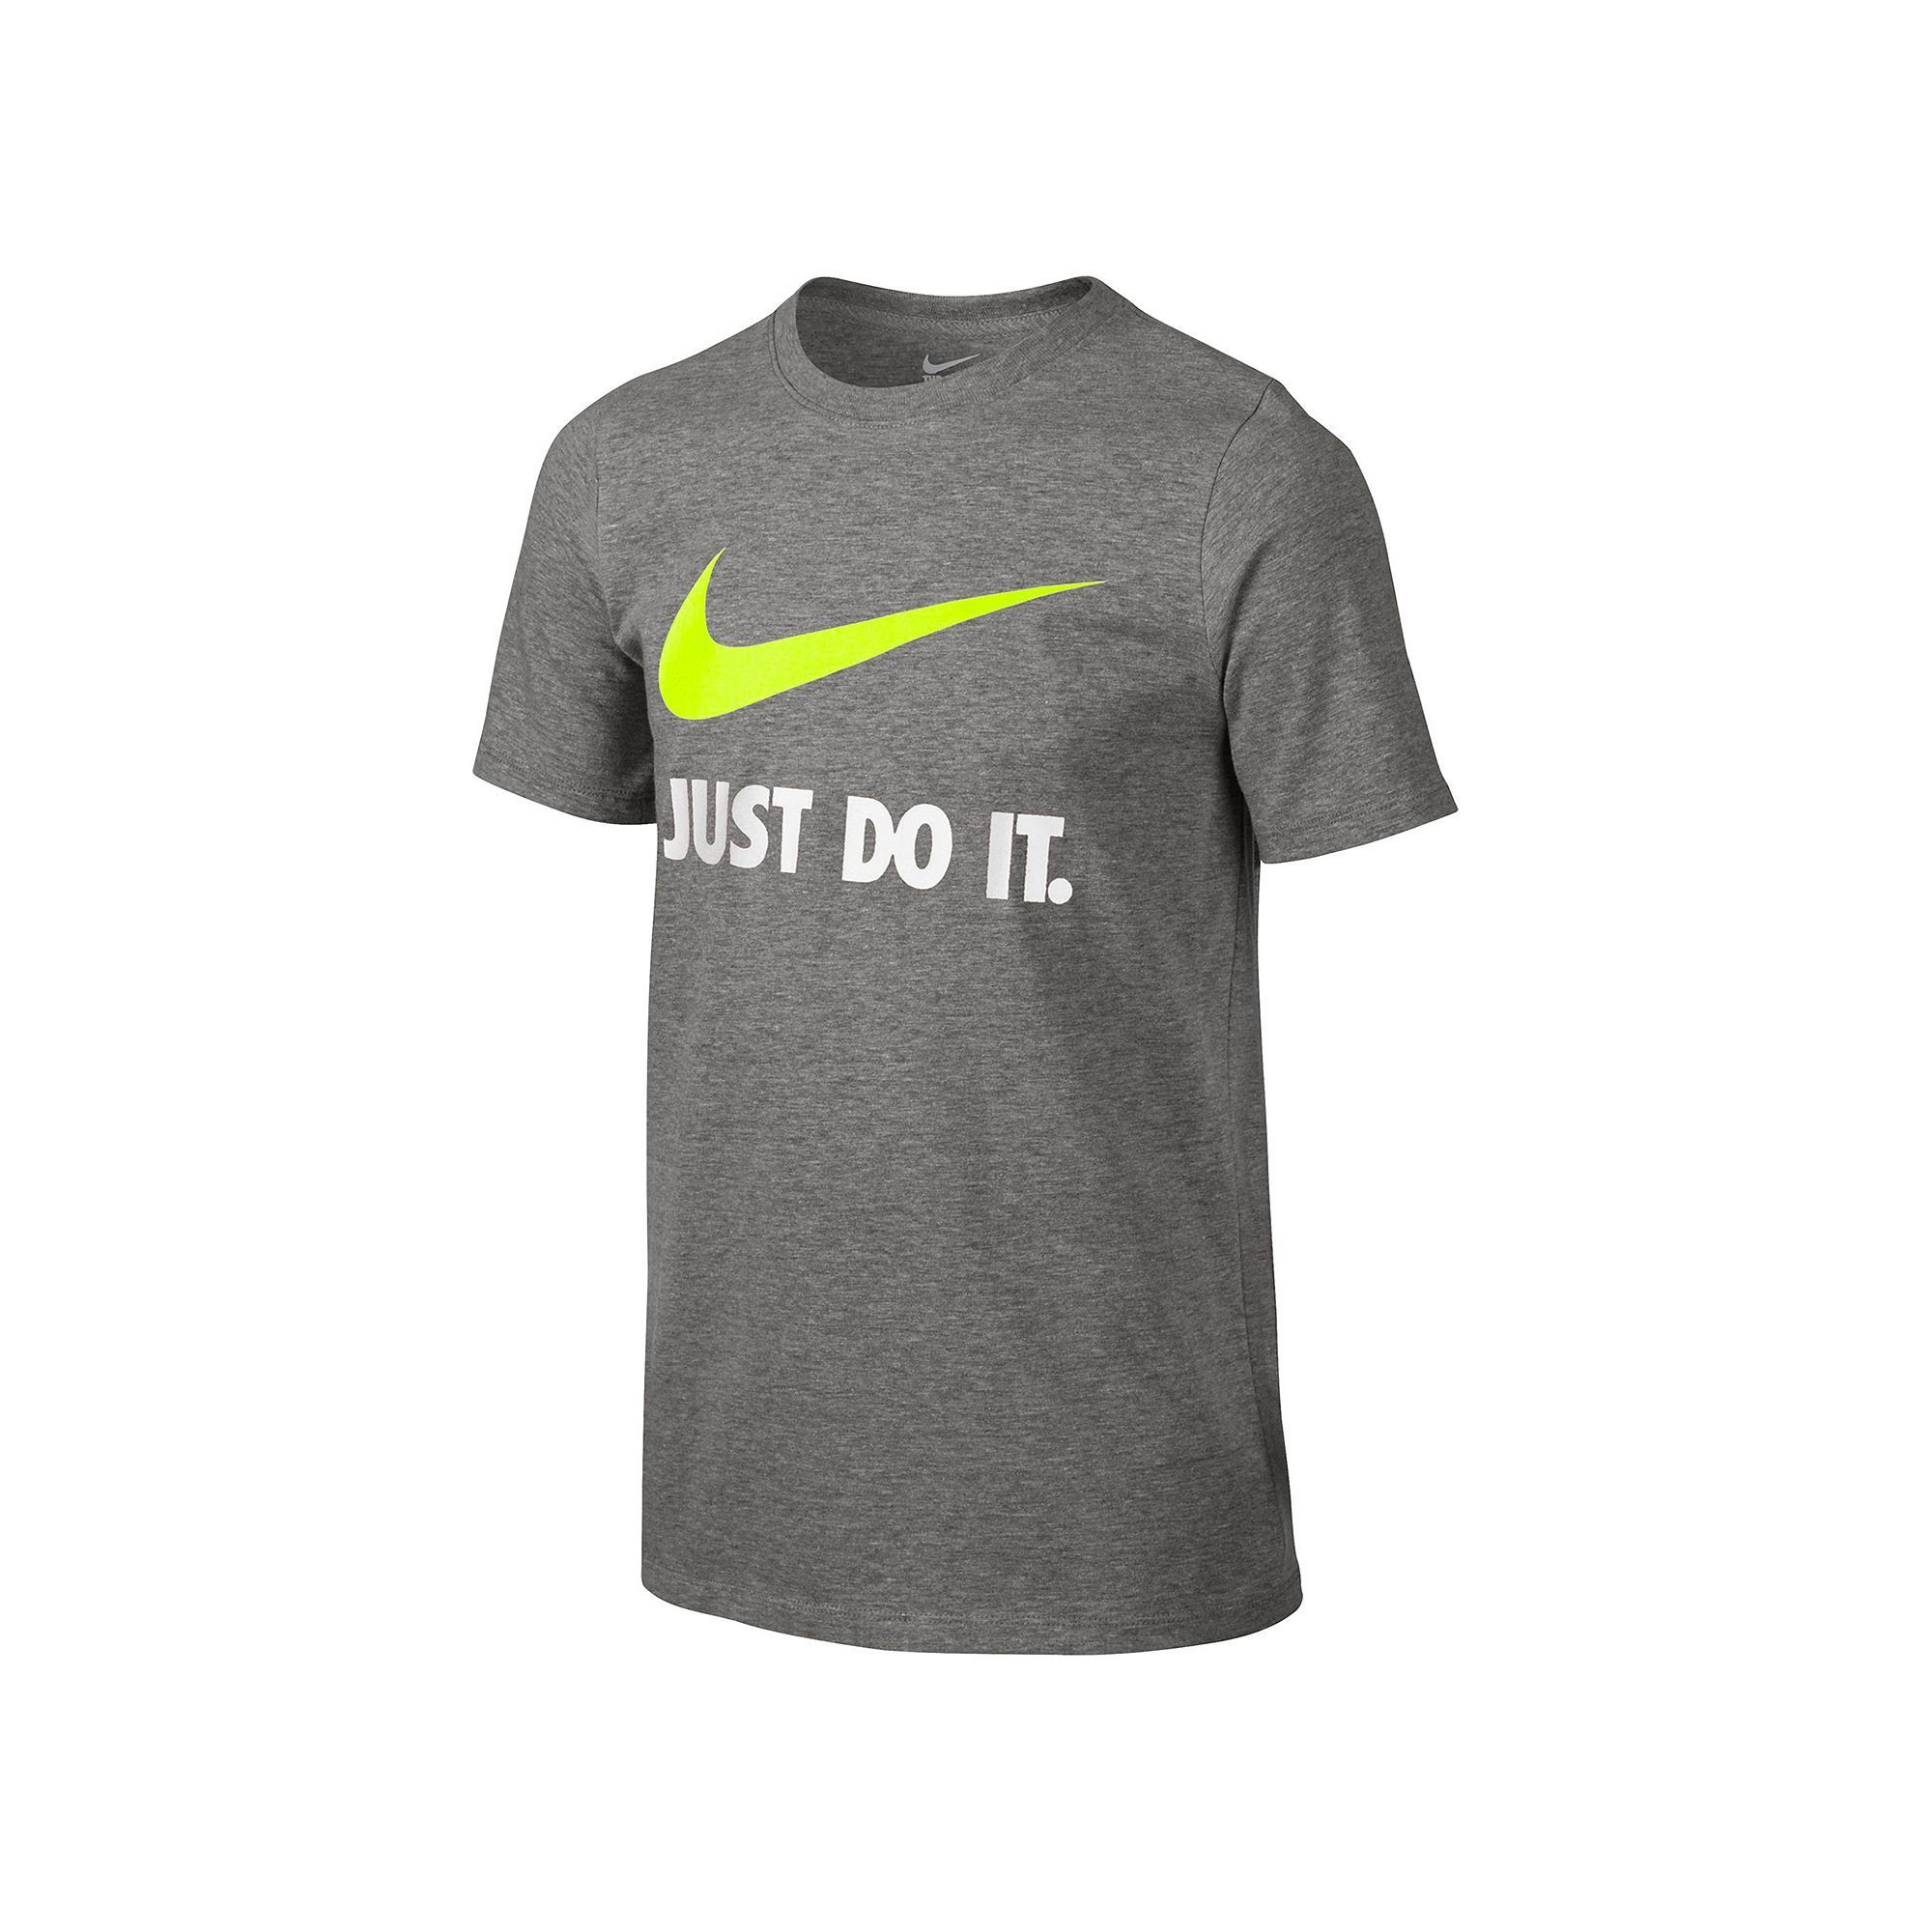 27ab32f2 Boys 8-20 Nike Just Do It Swoosh Graphic Tee, Boy's, Size: Medium, Grey  Other